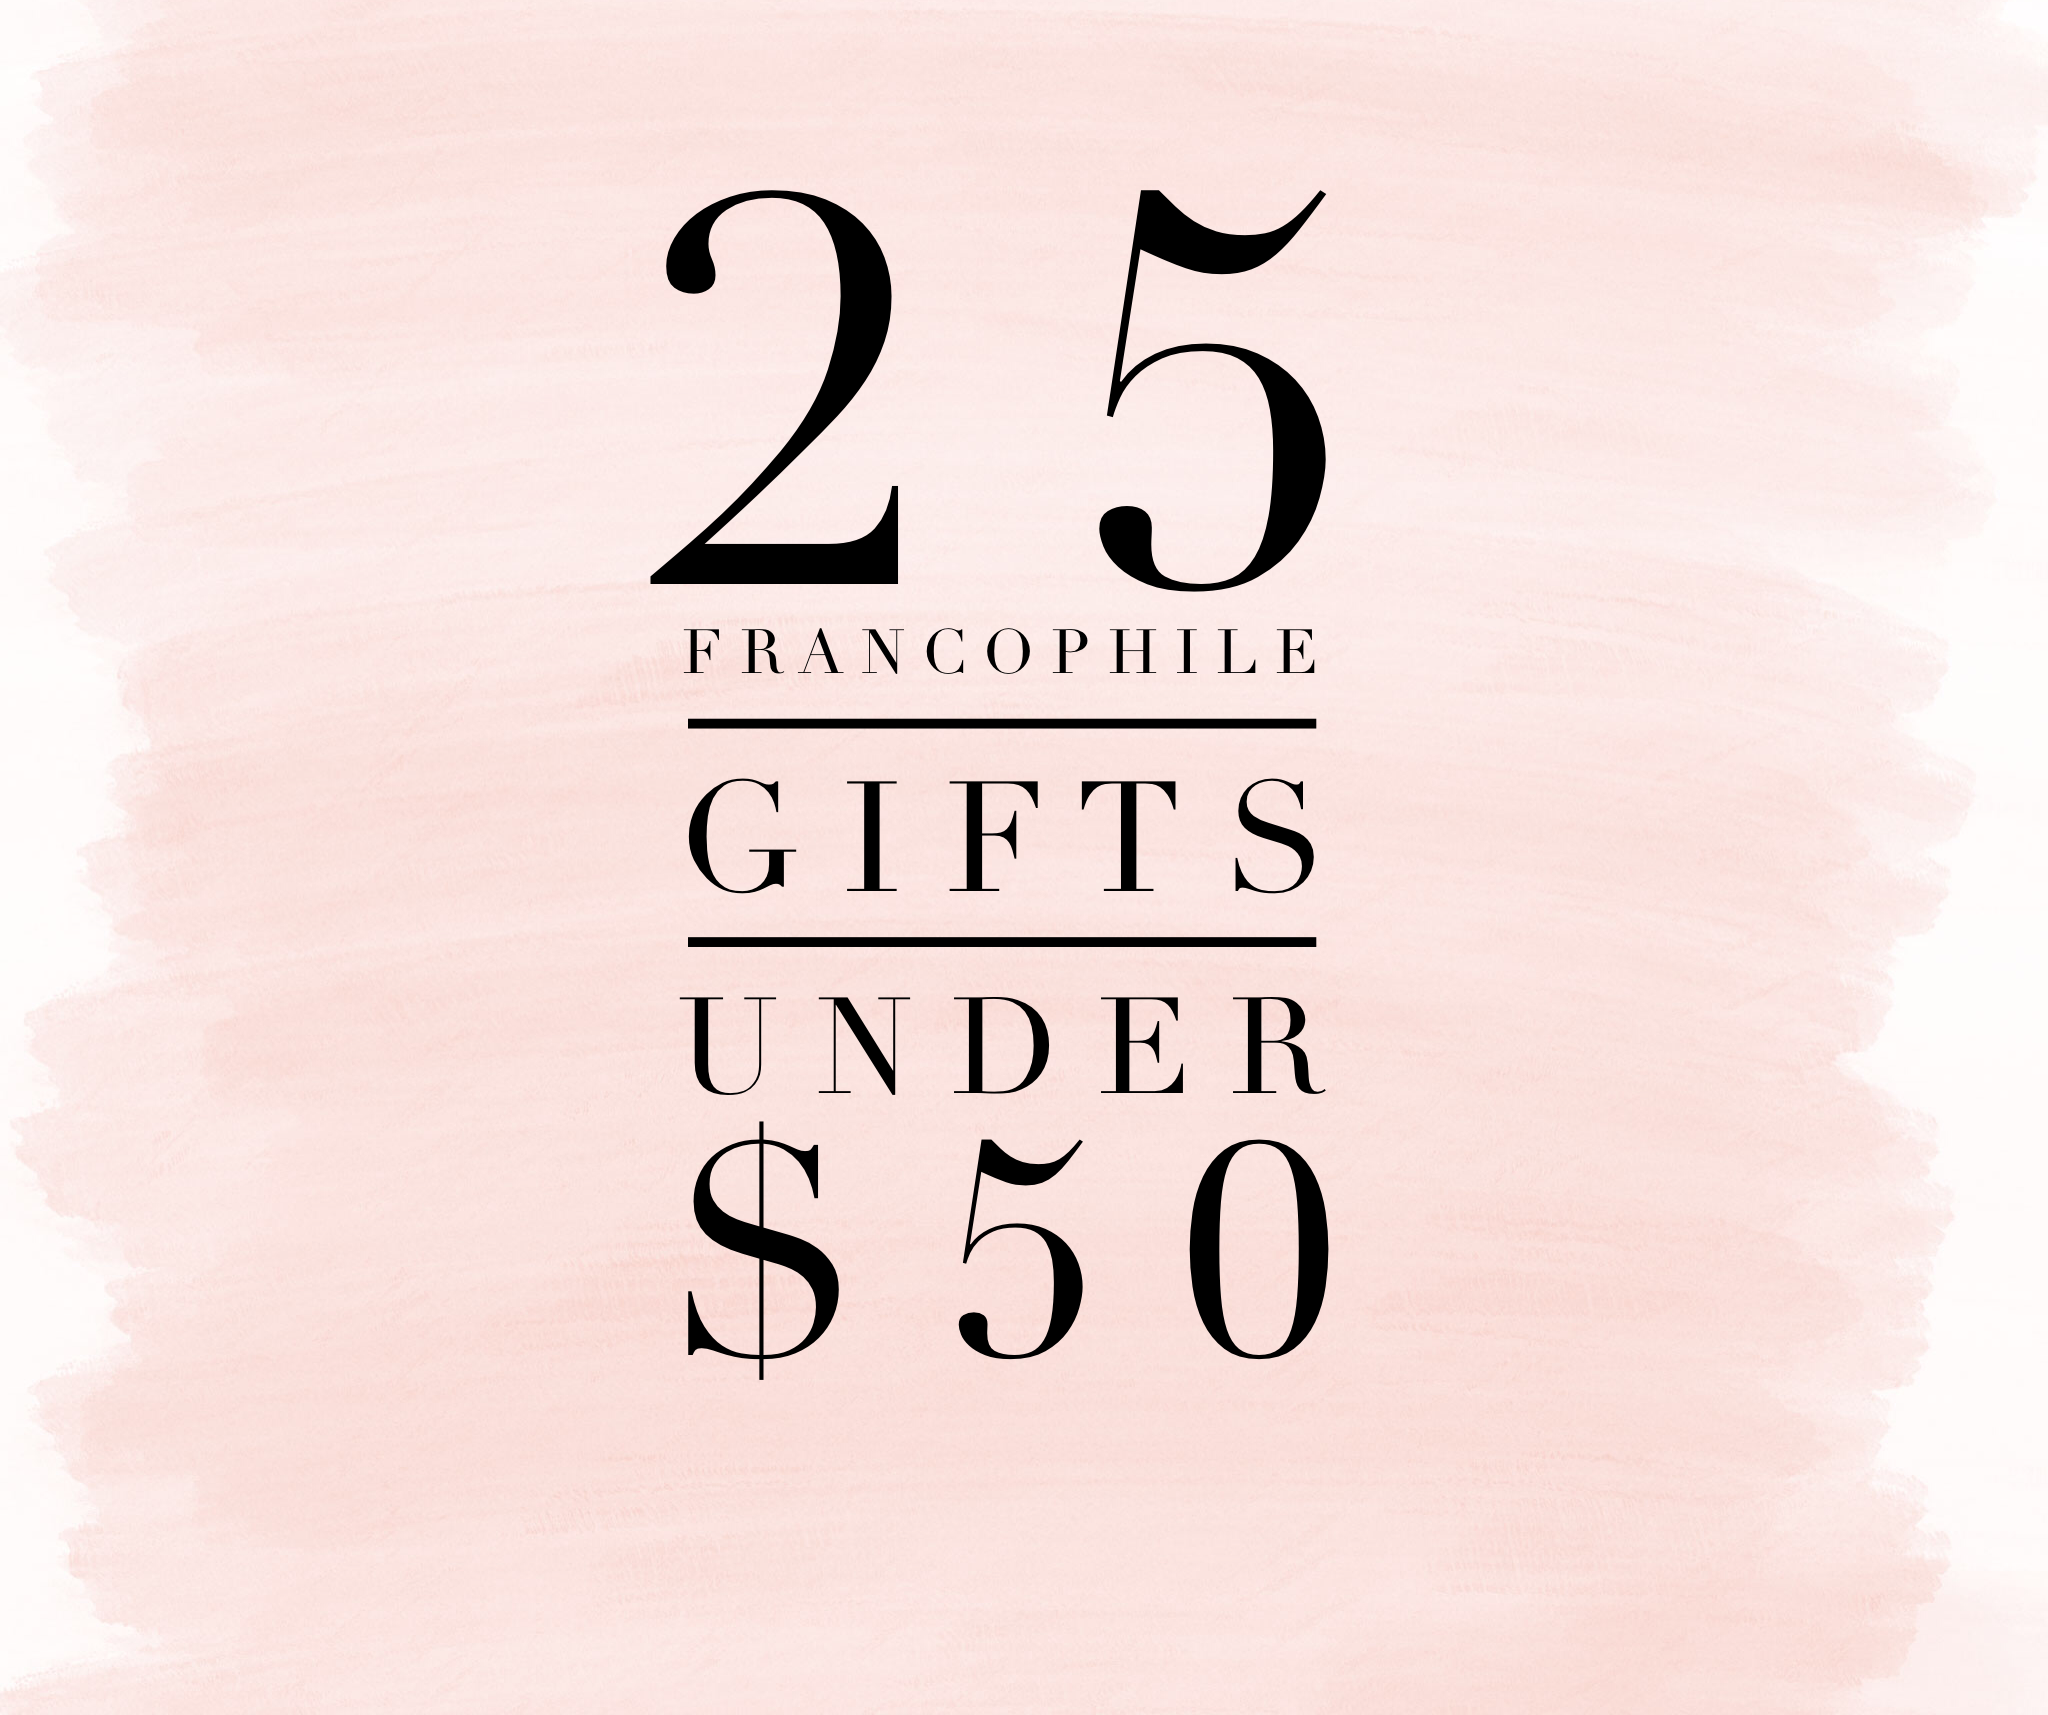 francophile gifts under $50